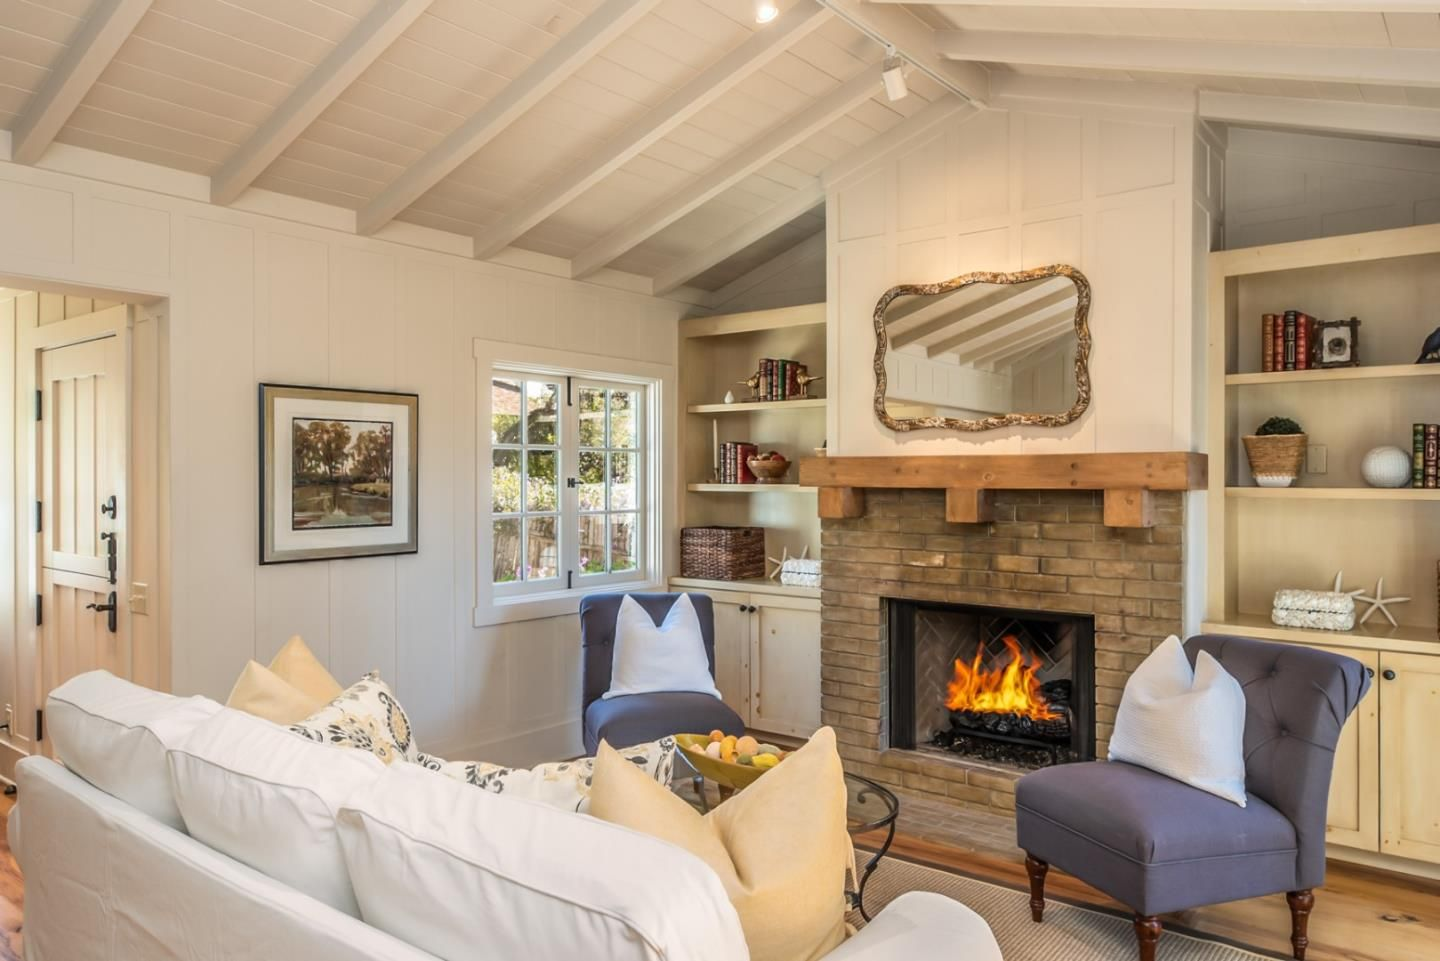 For Sale In Carmel Ca 93921 Check Out This 3 Bedroom